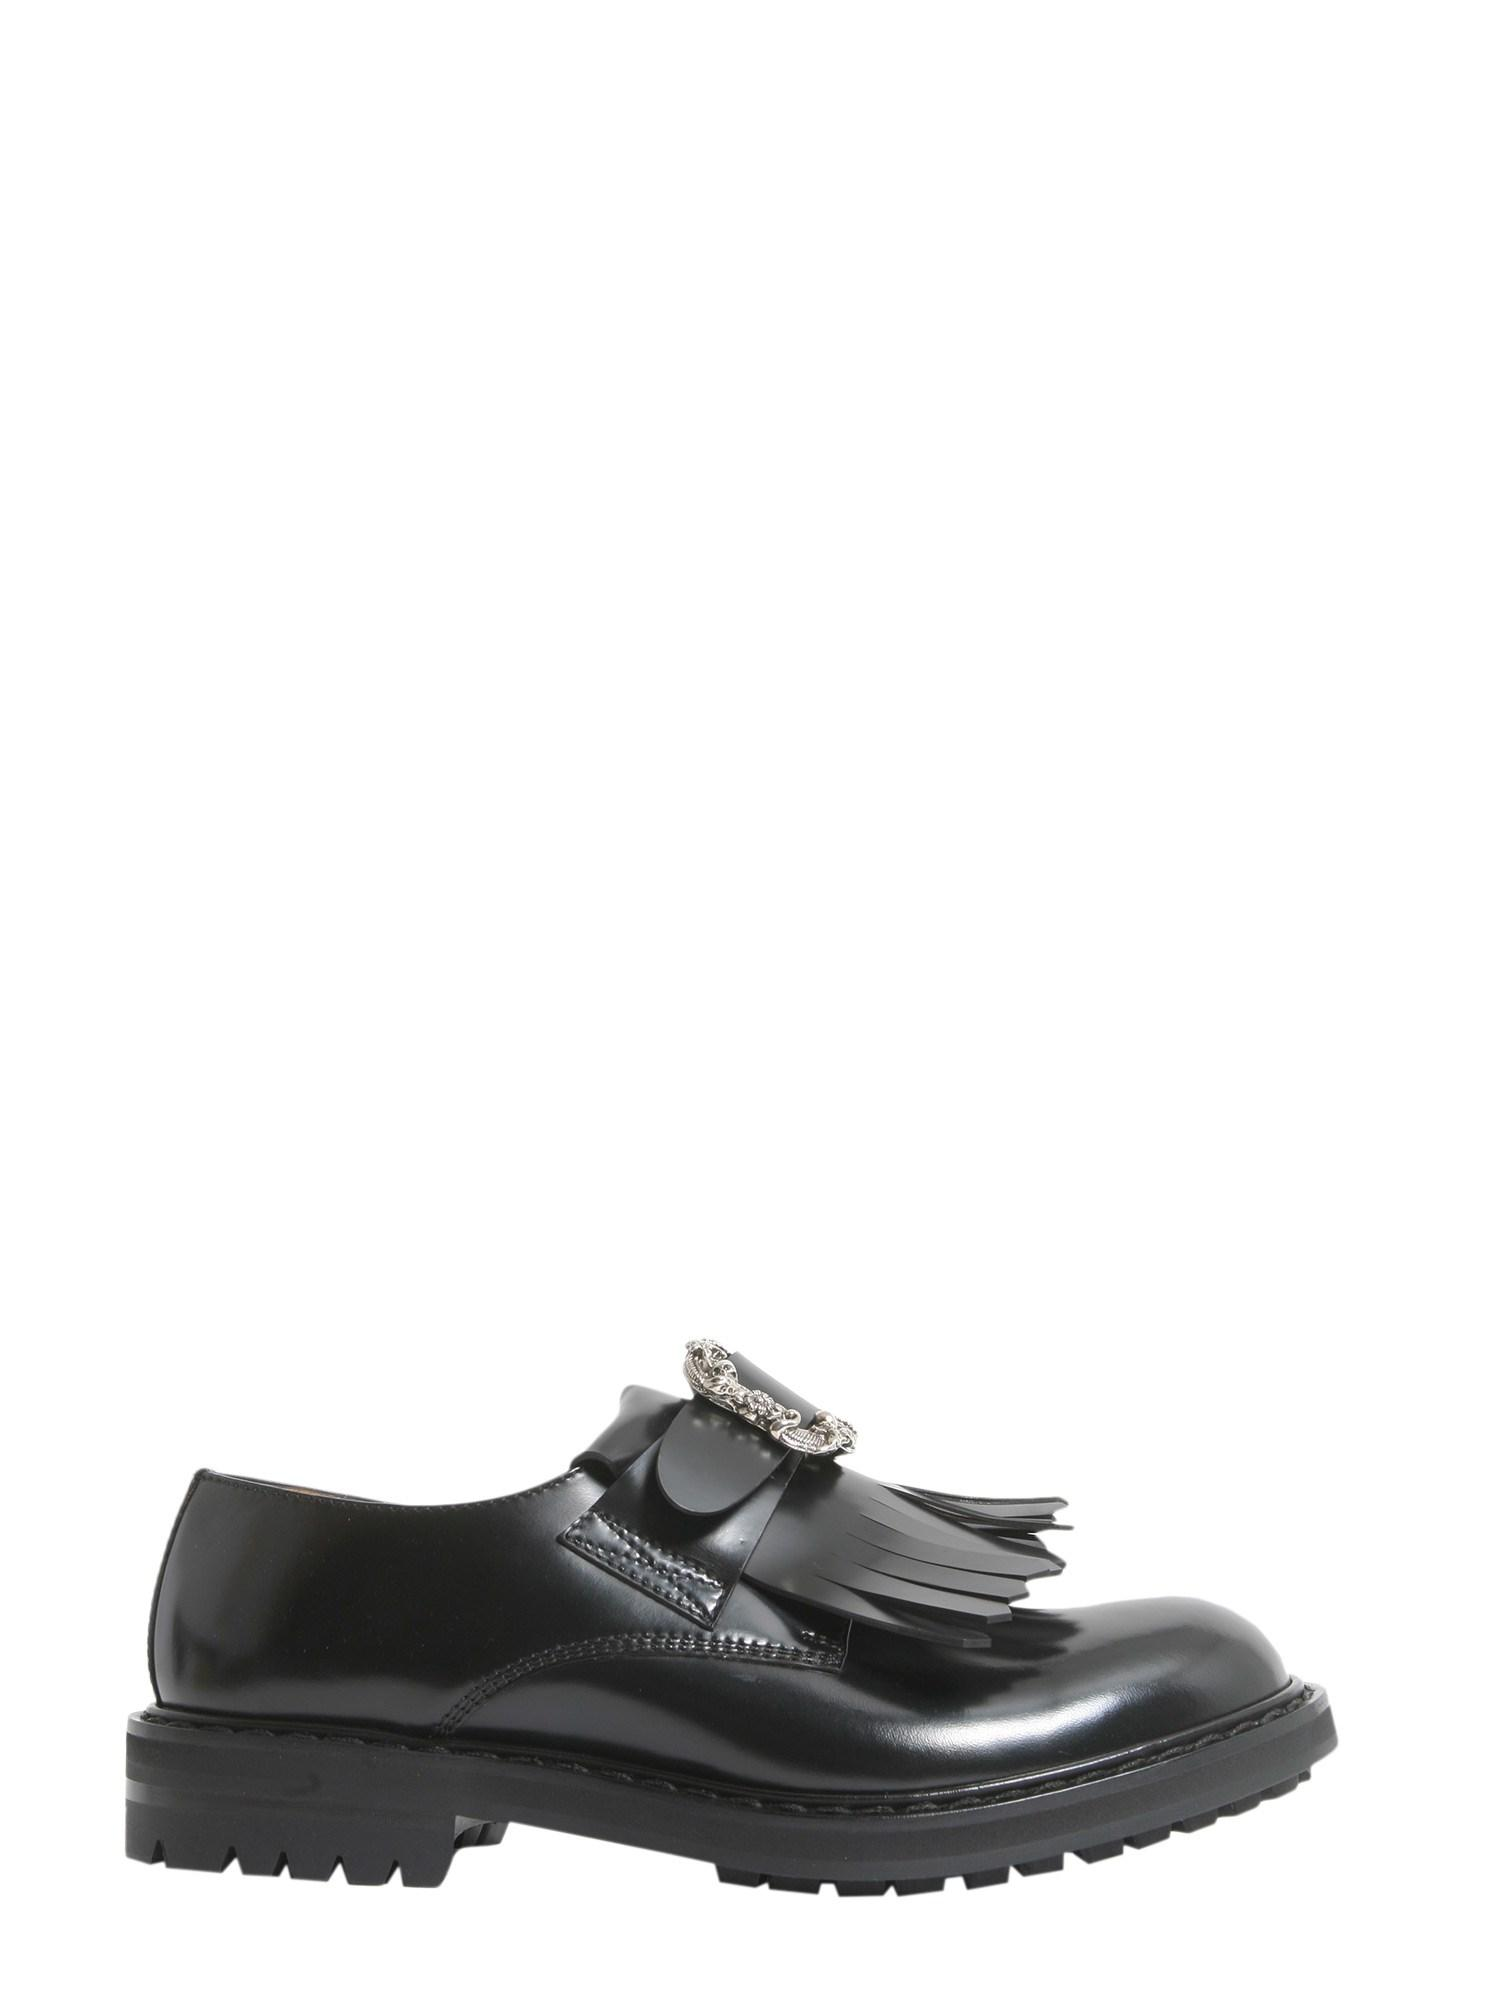 eace7b6a086 Lyst - Alexander McQueen Smooth Calf Leather Punk Buckle Loafer in ...